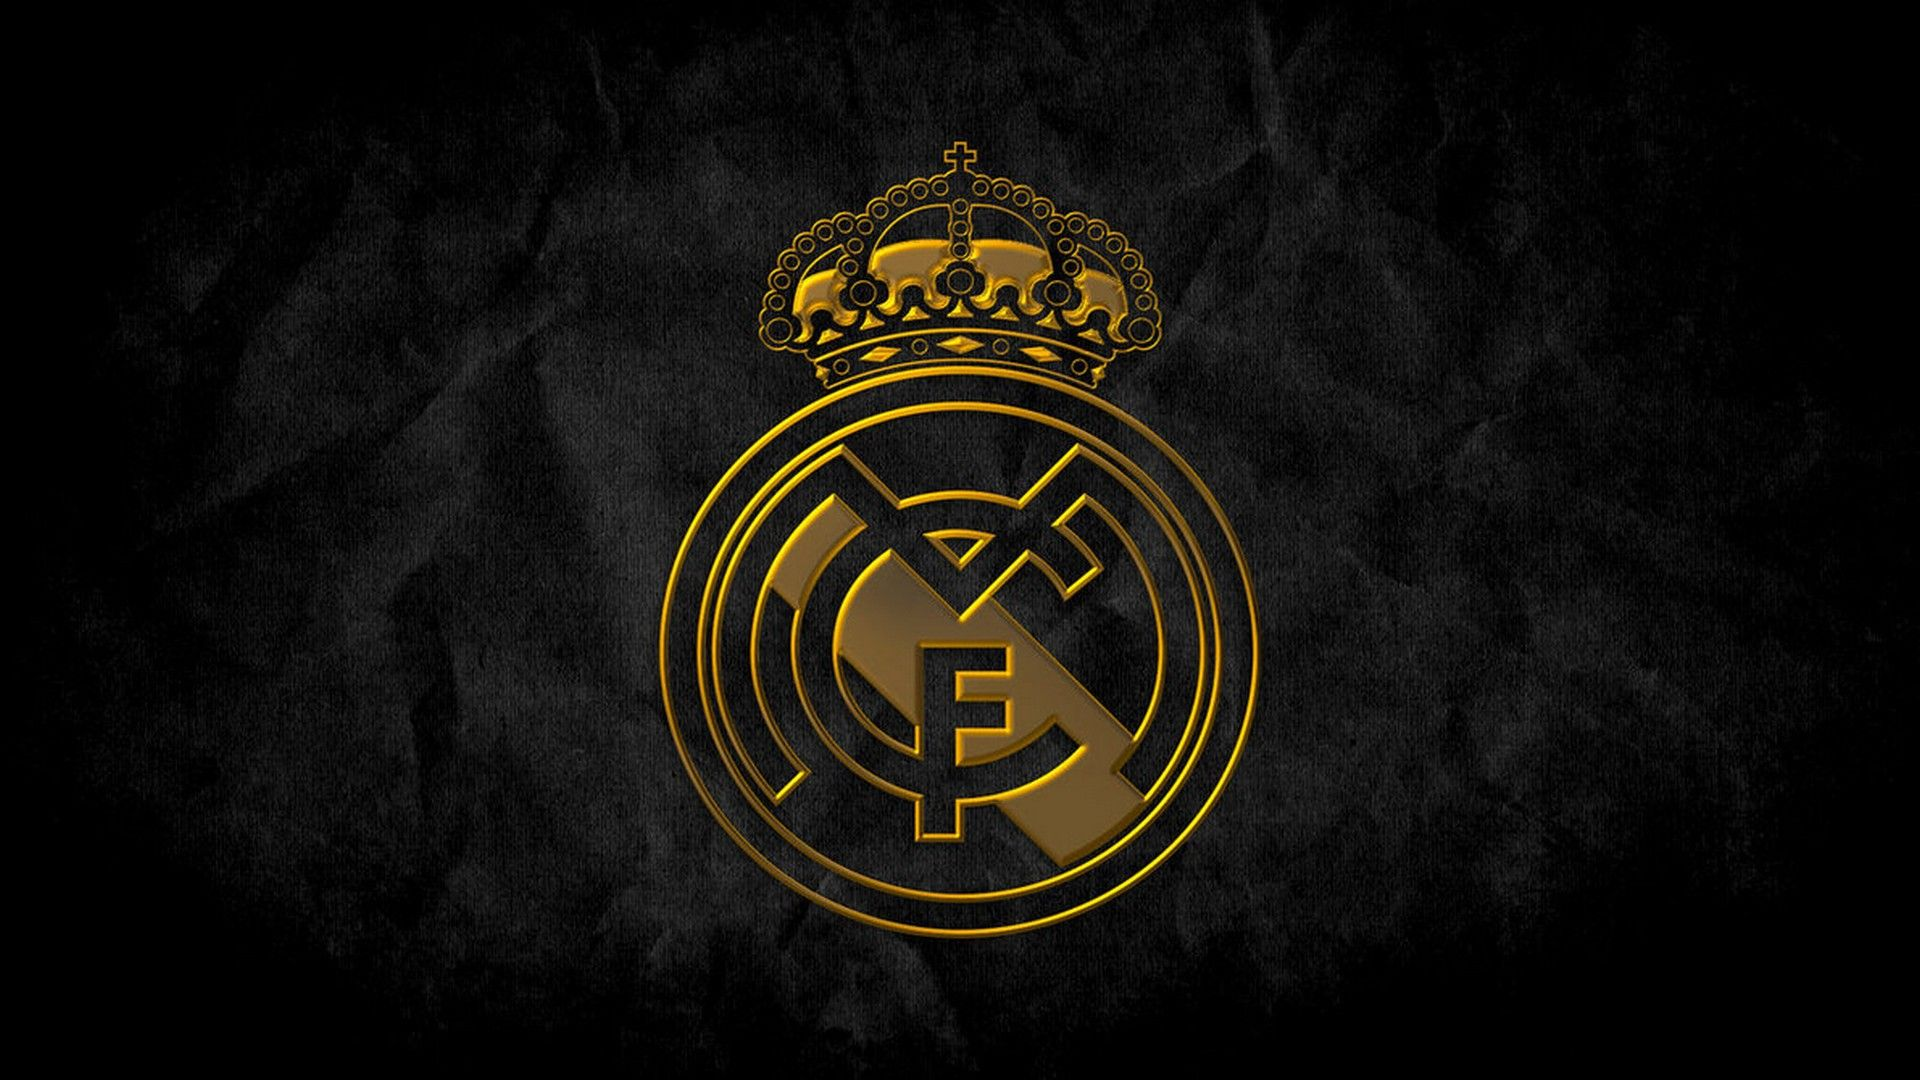 Madrid Wallpapers Top Free Madrid Backgrounds